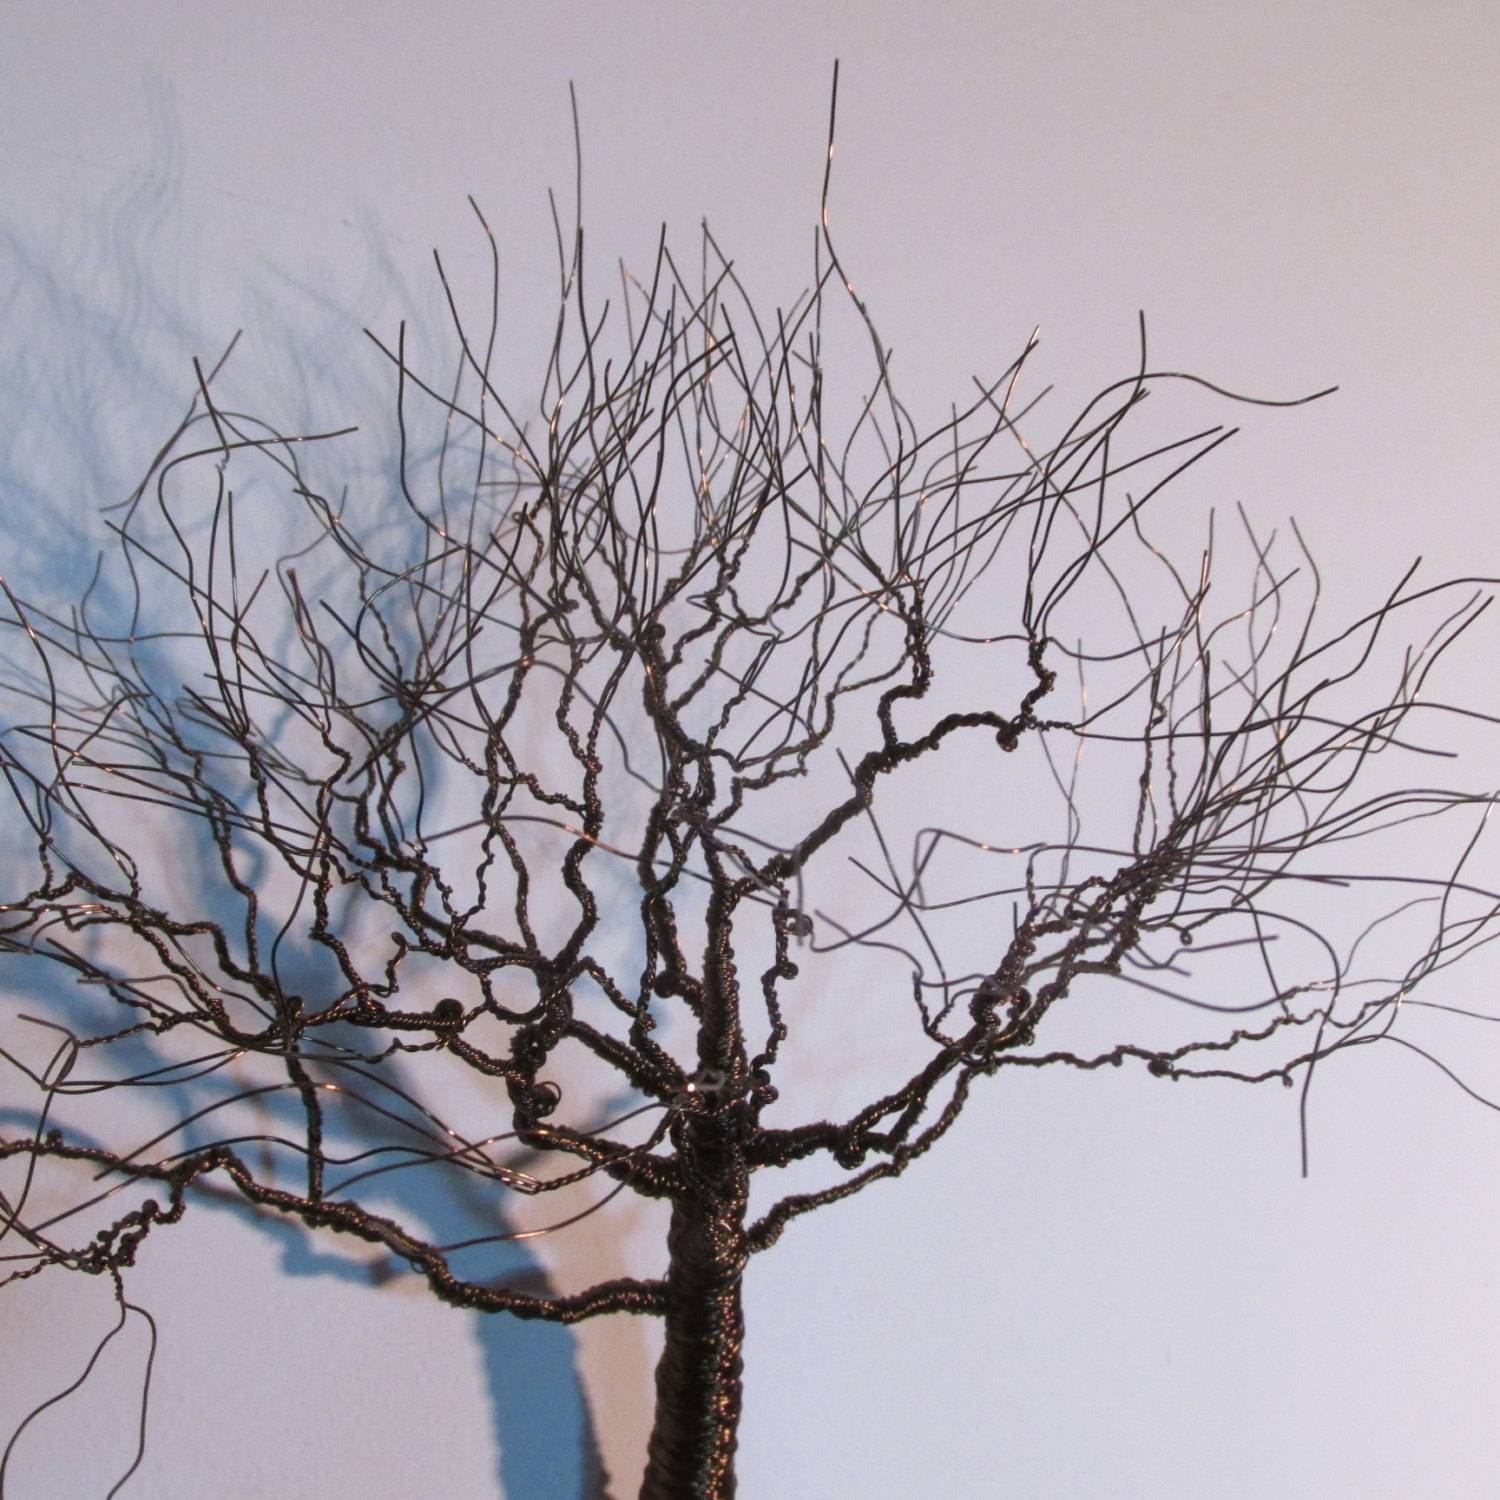 Wall Art Decor Ideas: Bronze Decorations Metal Wall Art Tree Brown For Best And Newest Metal Wall Art Trees And Branches (View 13 of 18)